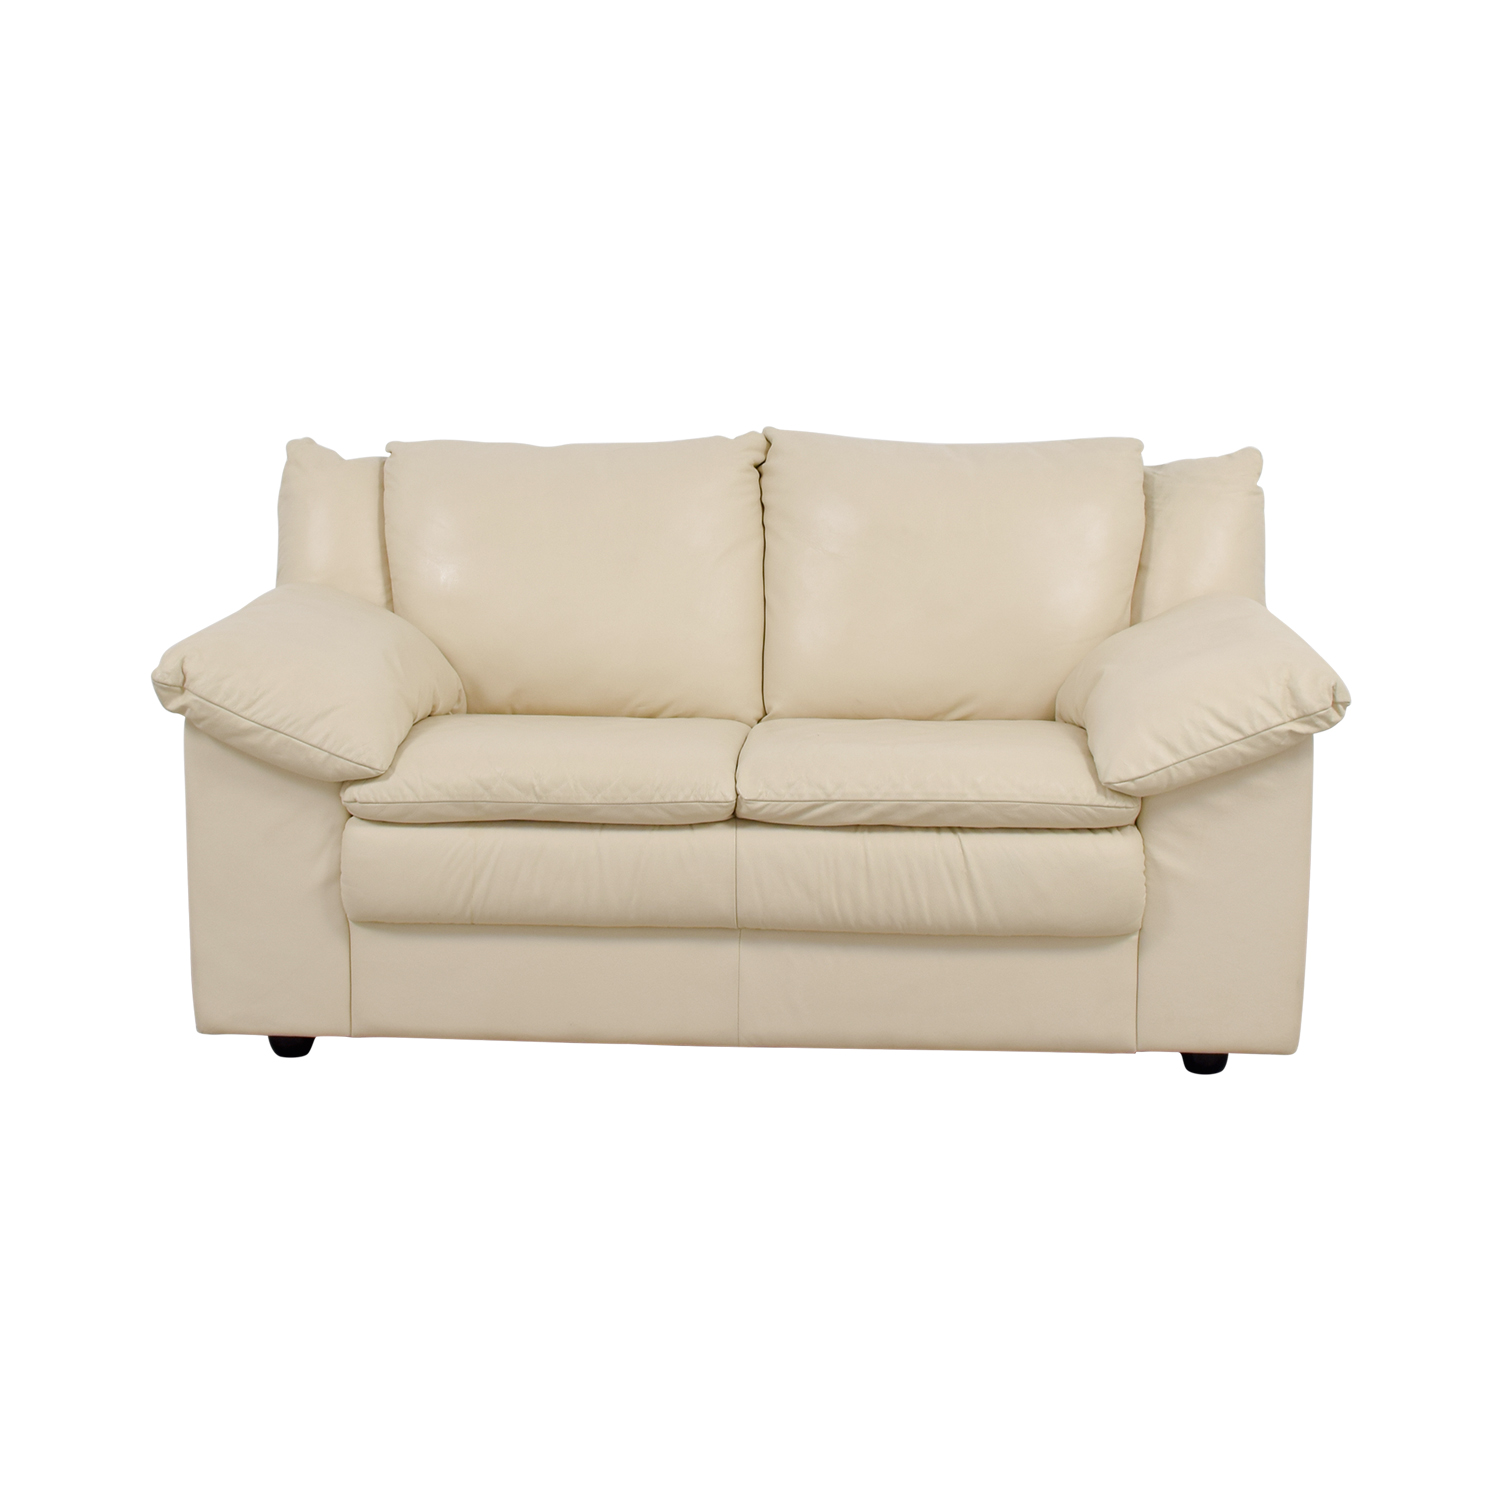 Scan Design Furniture Scan Design Leatherette Loveseat price